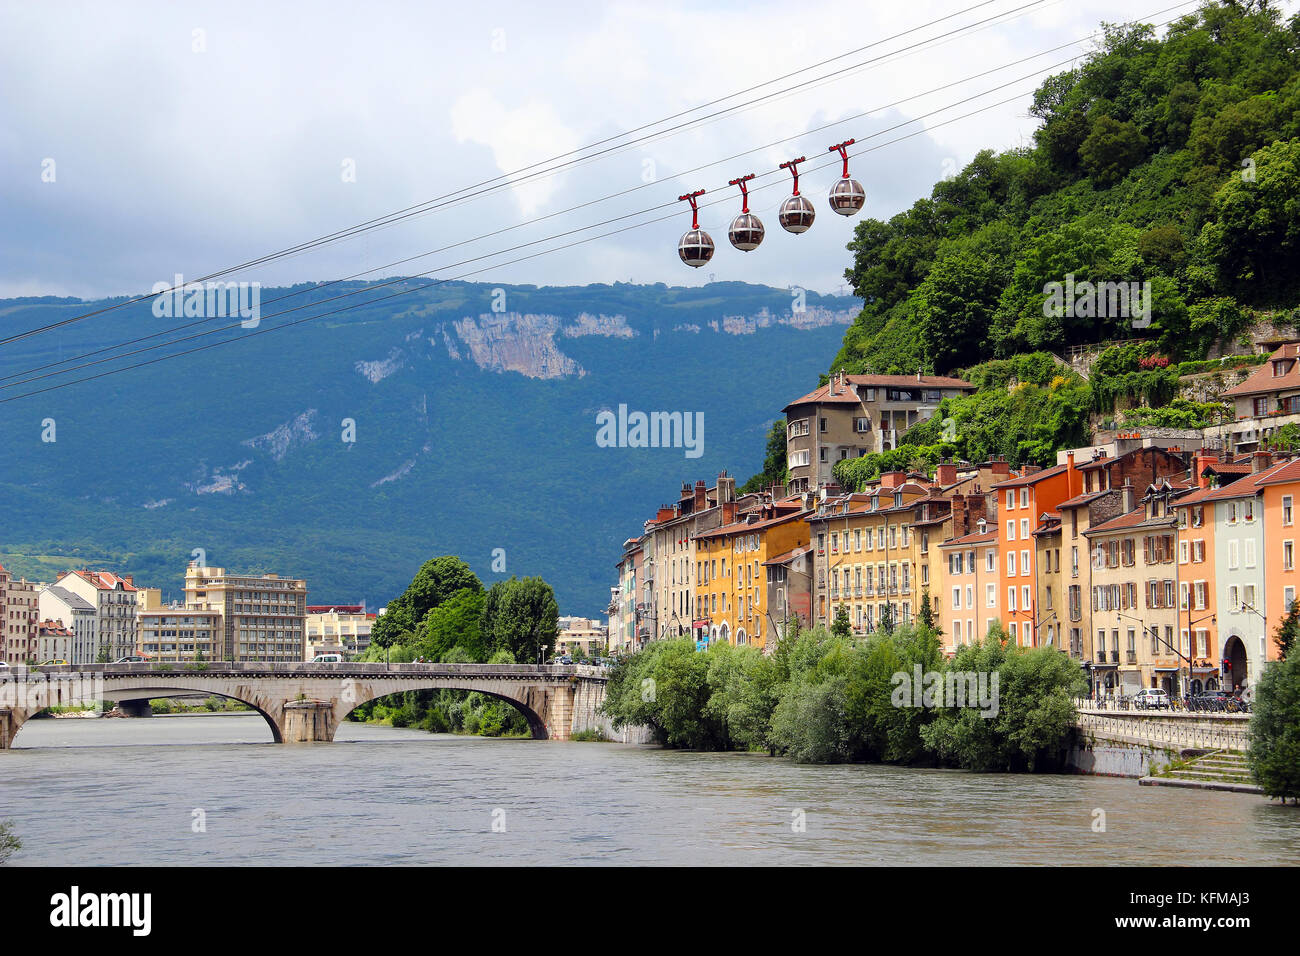 Isere river and cable car in the center of Grenoble, France Stock Photo